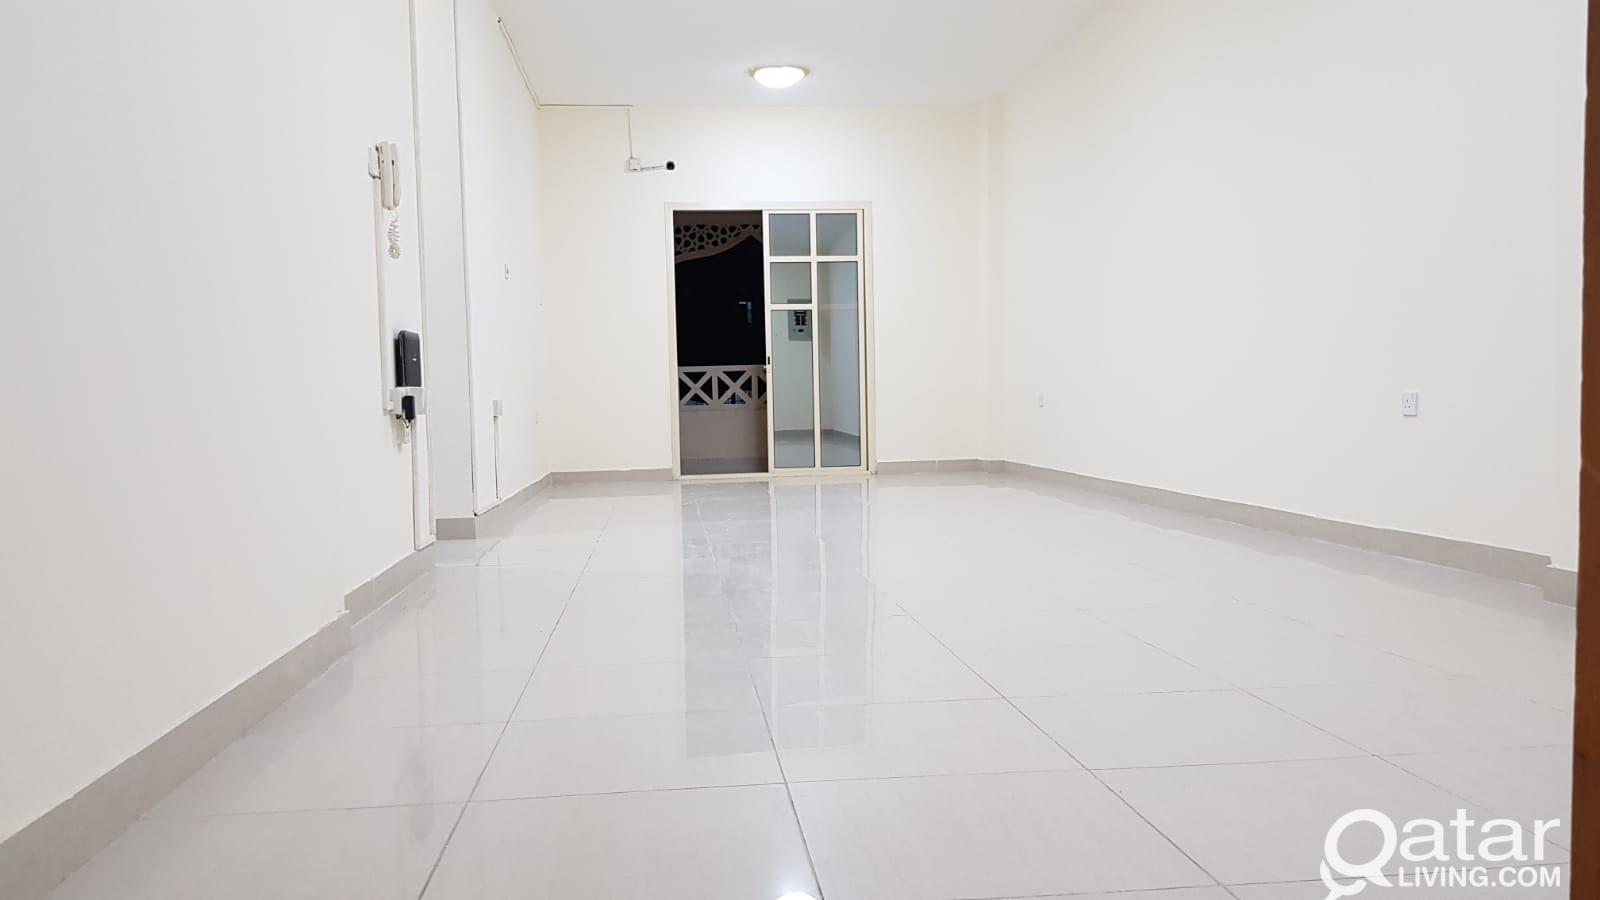 2 bedroom flat unfurnished with balcony